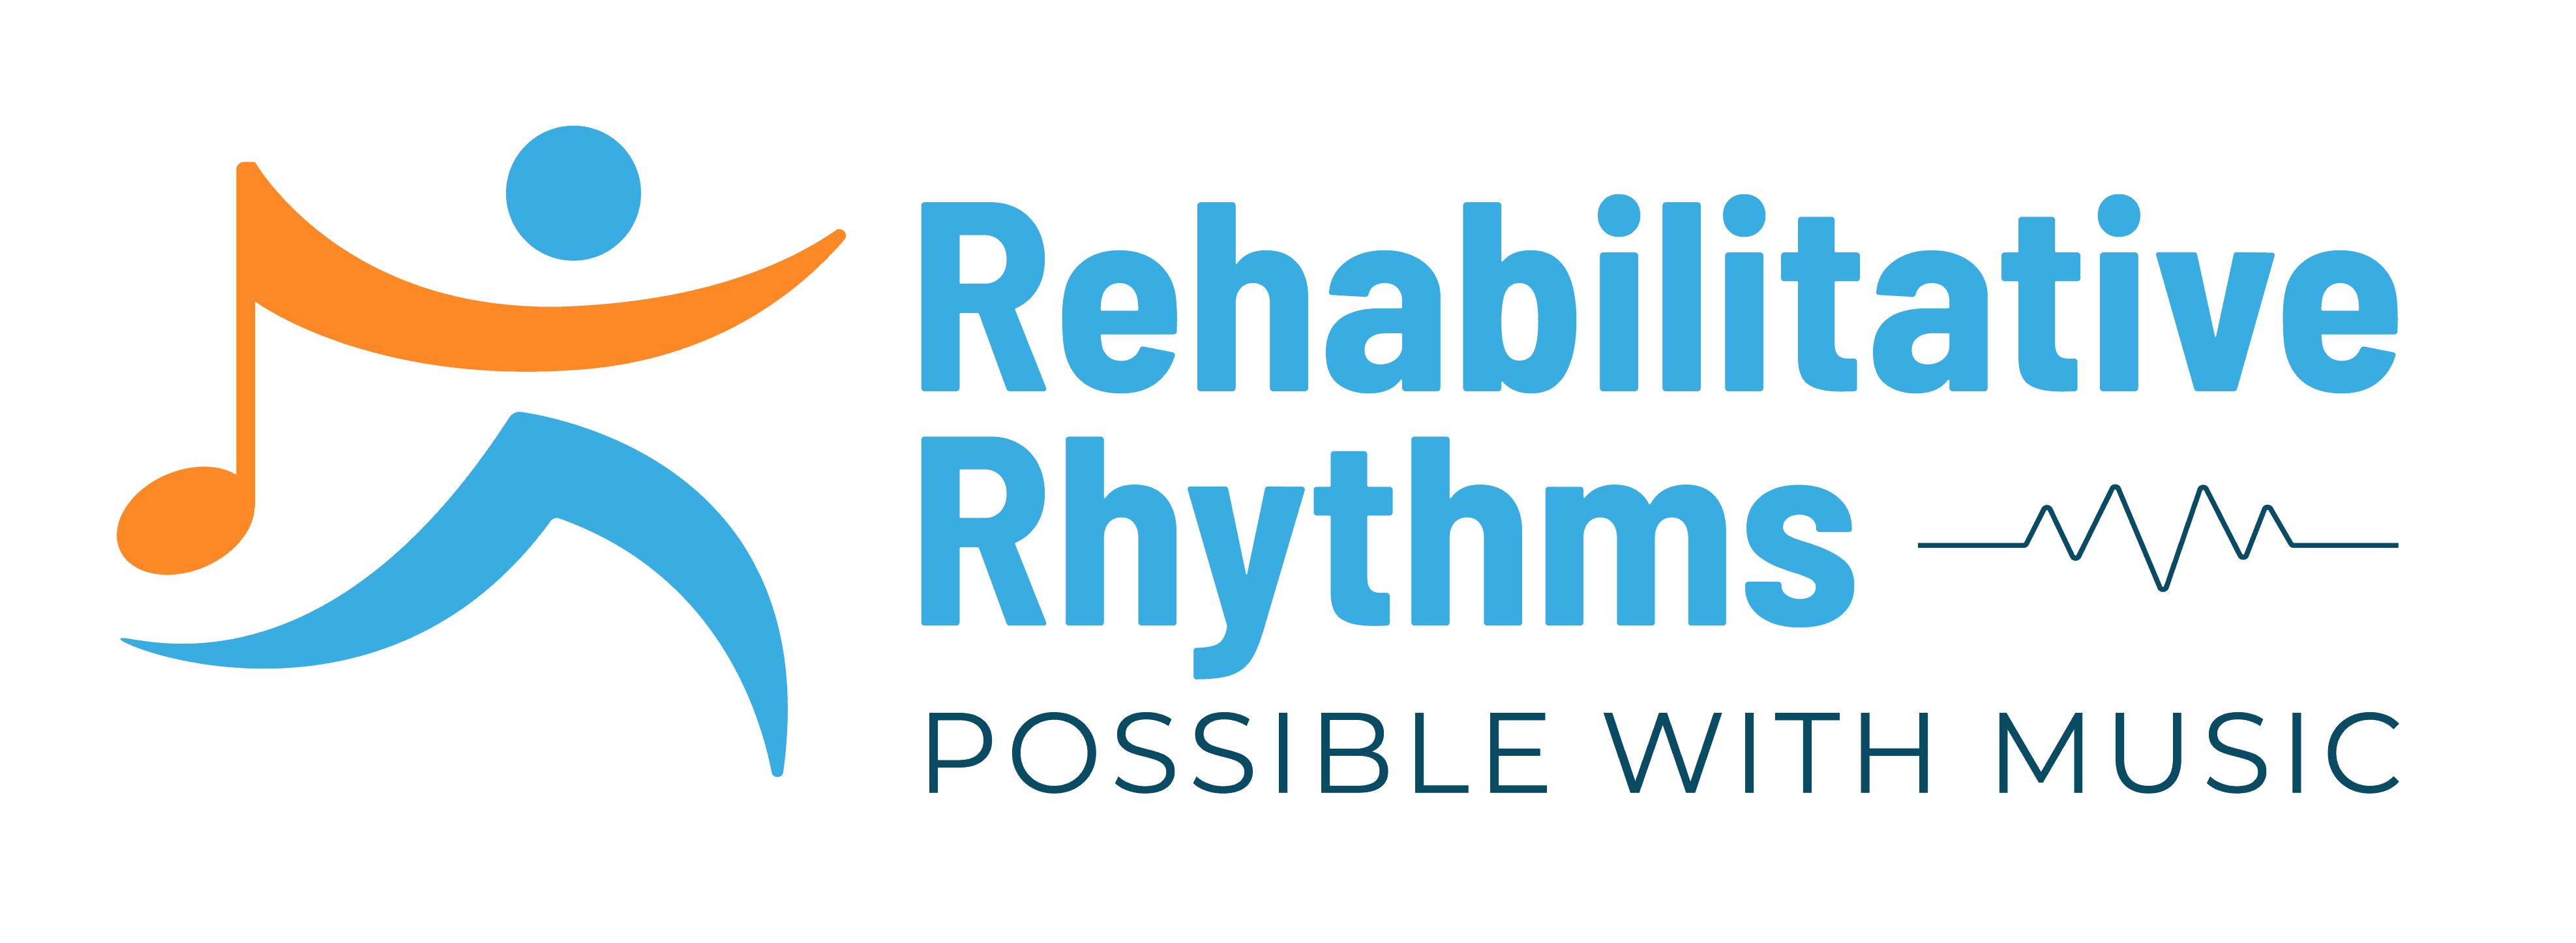 Rehabilitative Rhythms Logo_Logo with Tagline-short-01